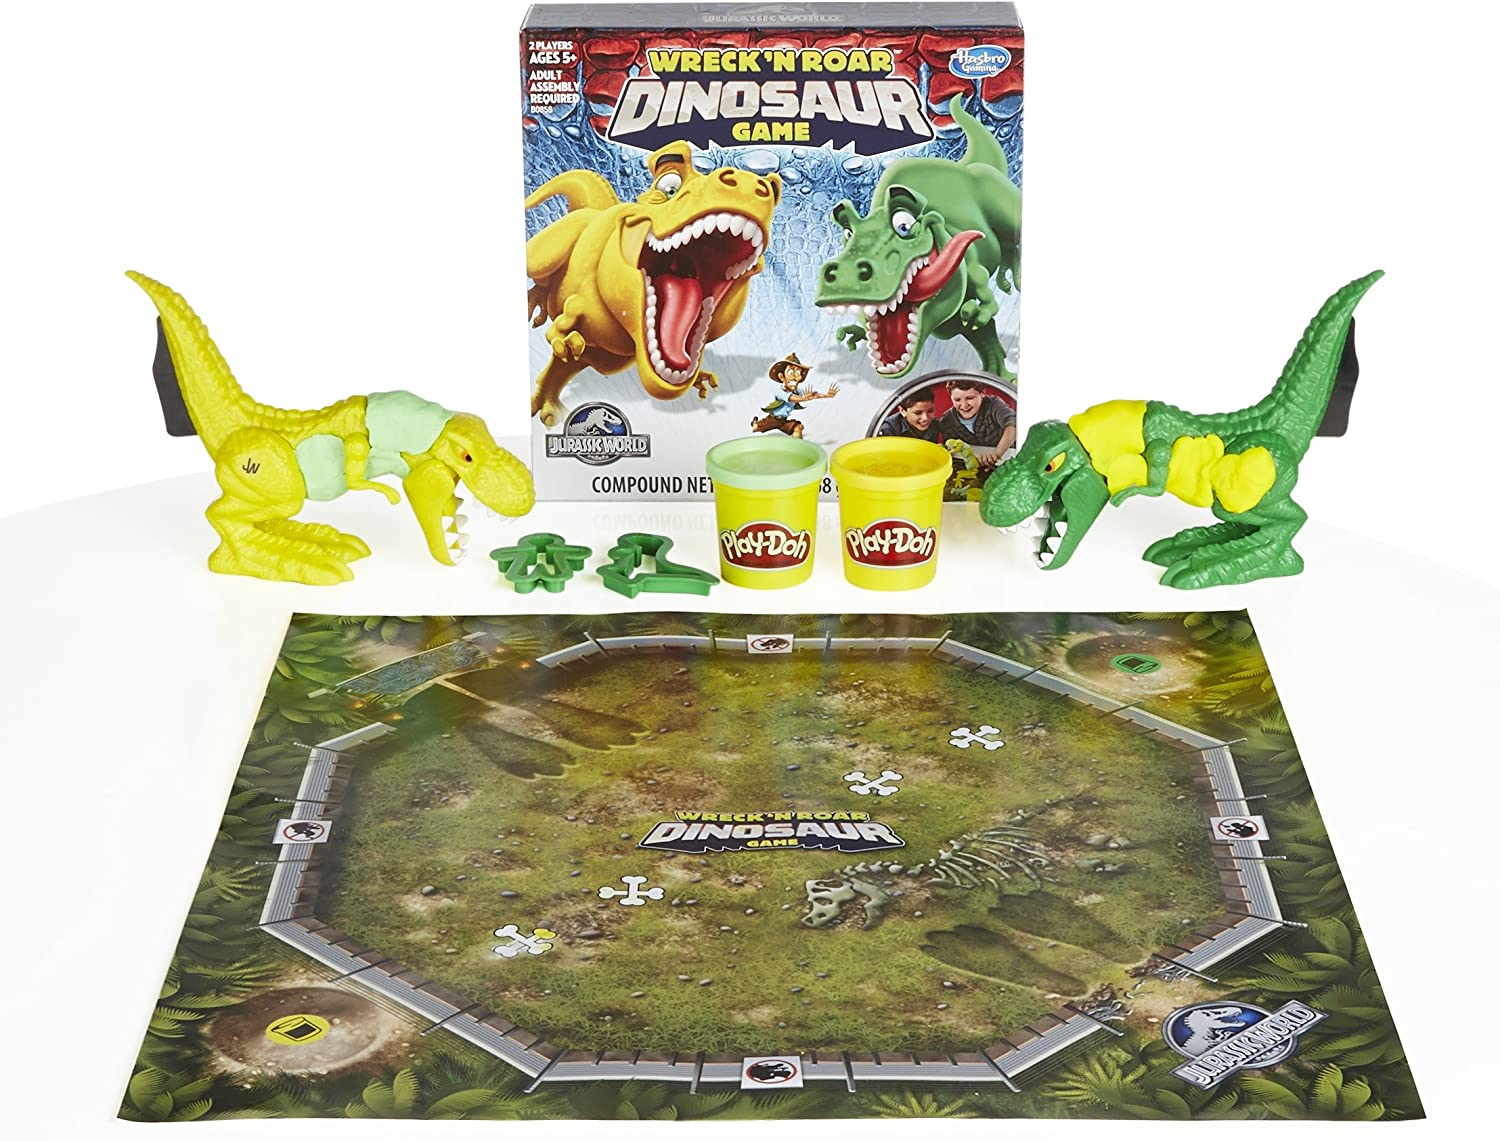 Jurassic World Wreck 'N Roar Dinosaur Game